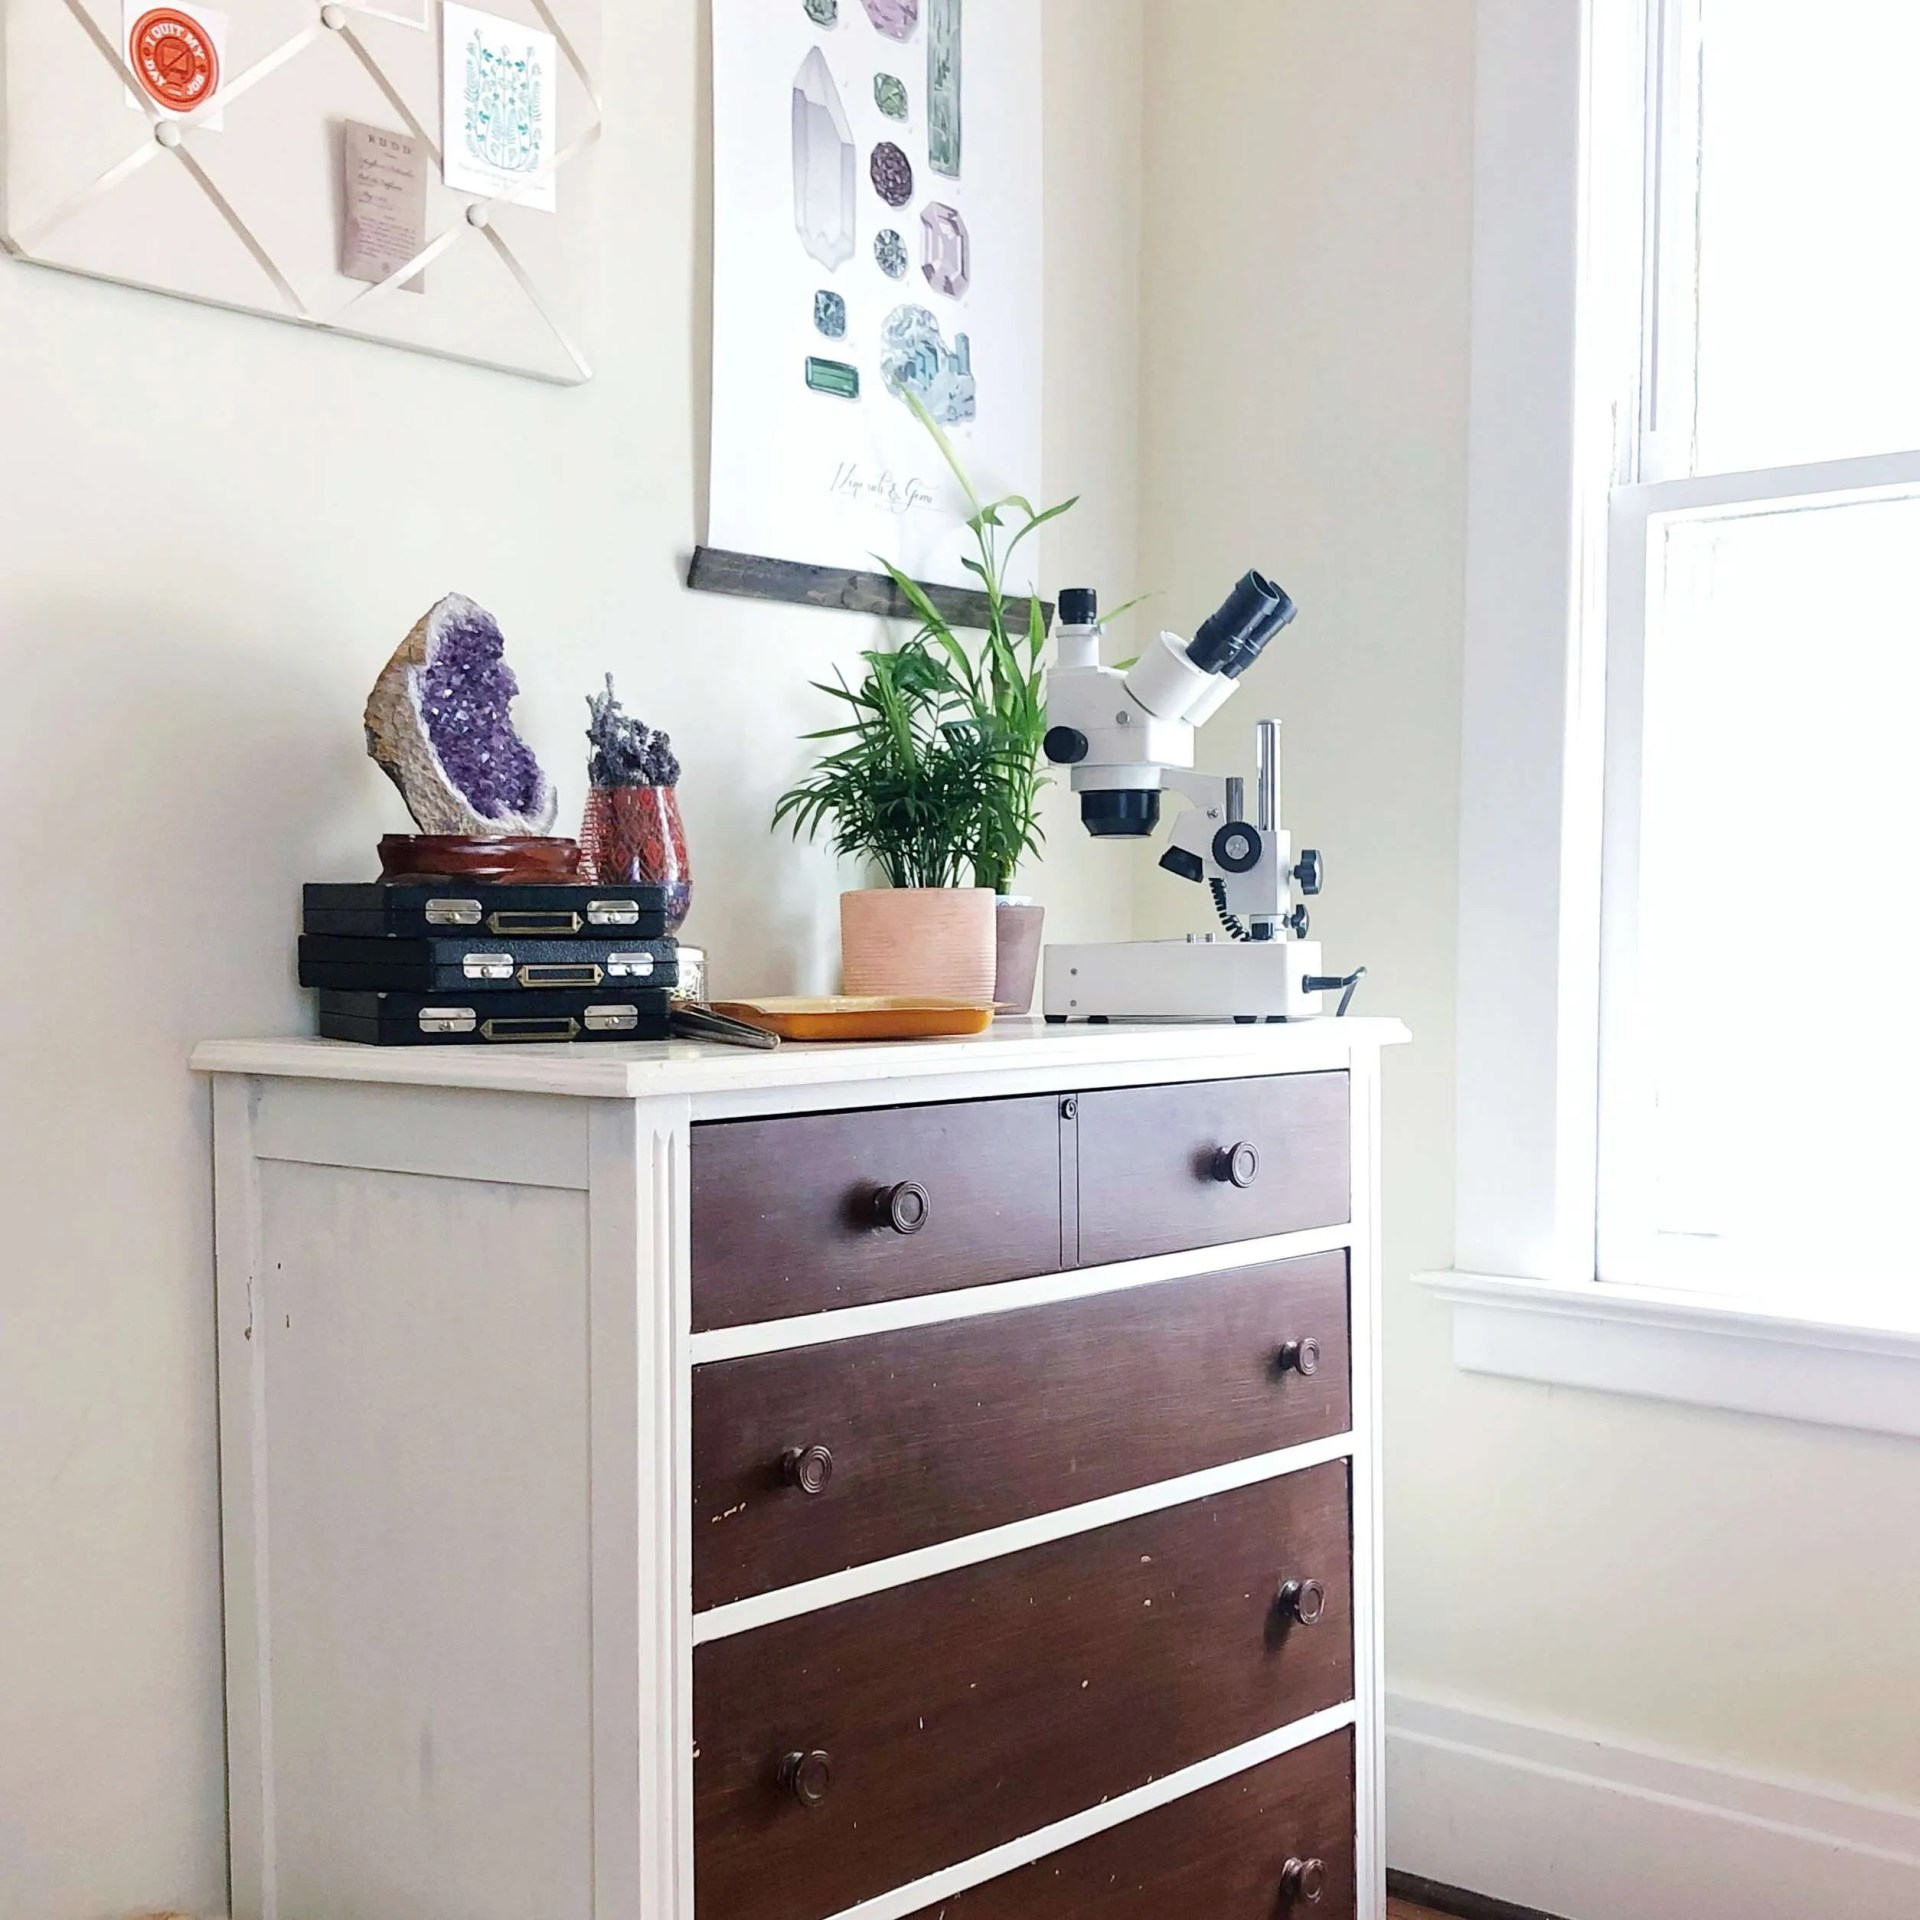 DIY dresser makeover - before and after